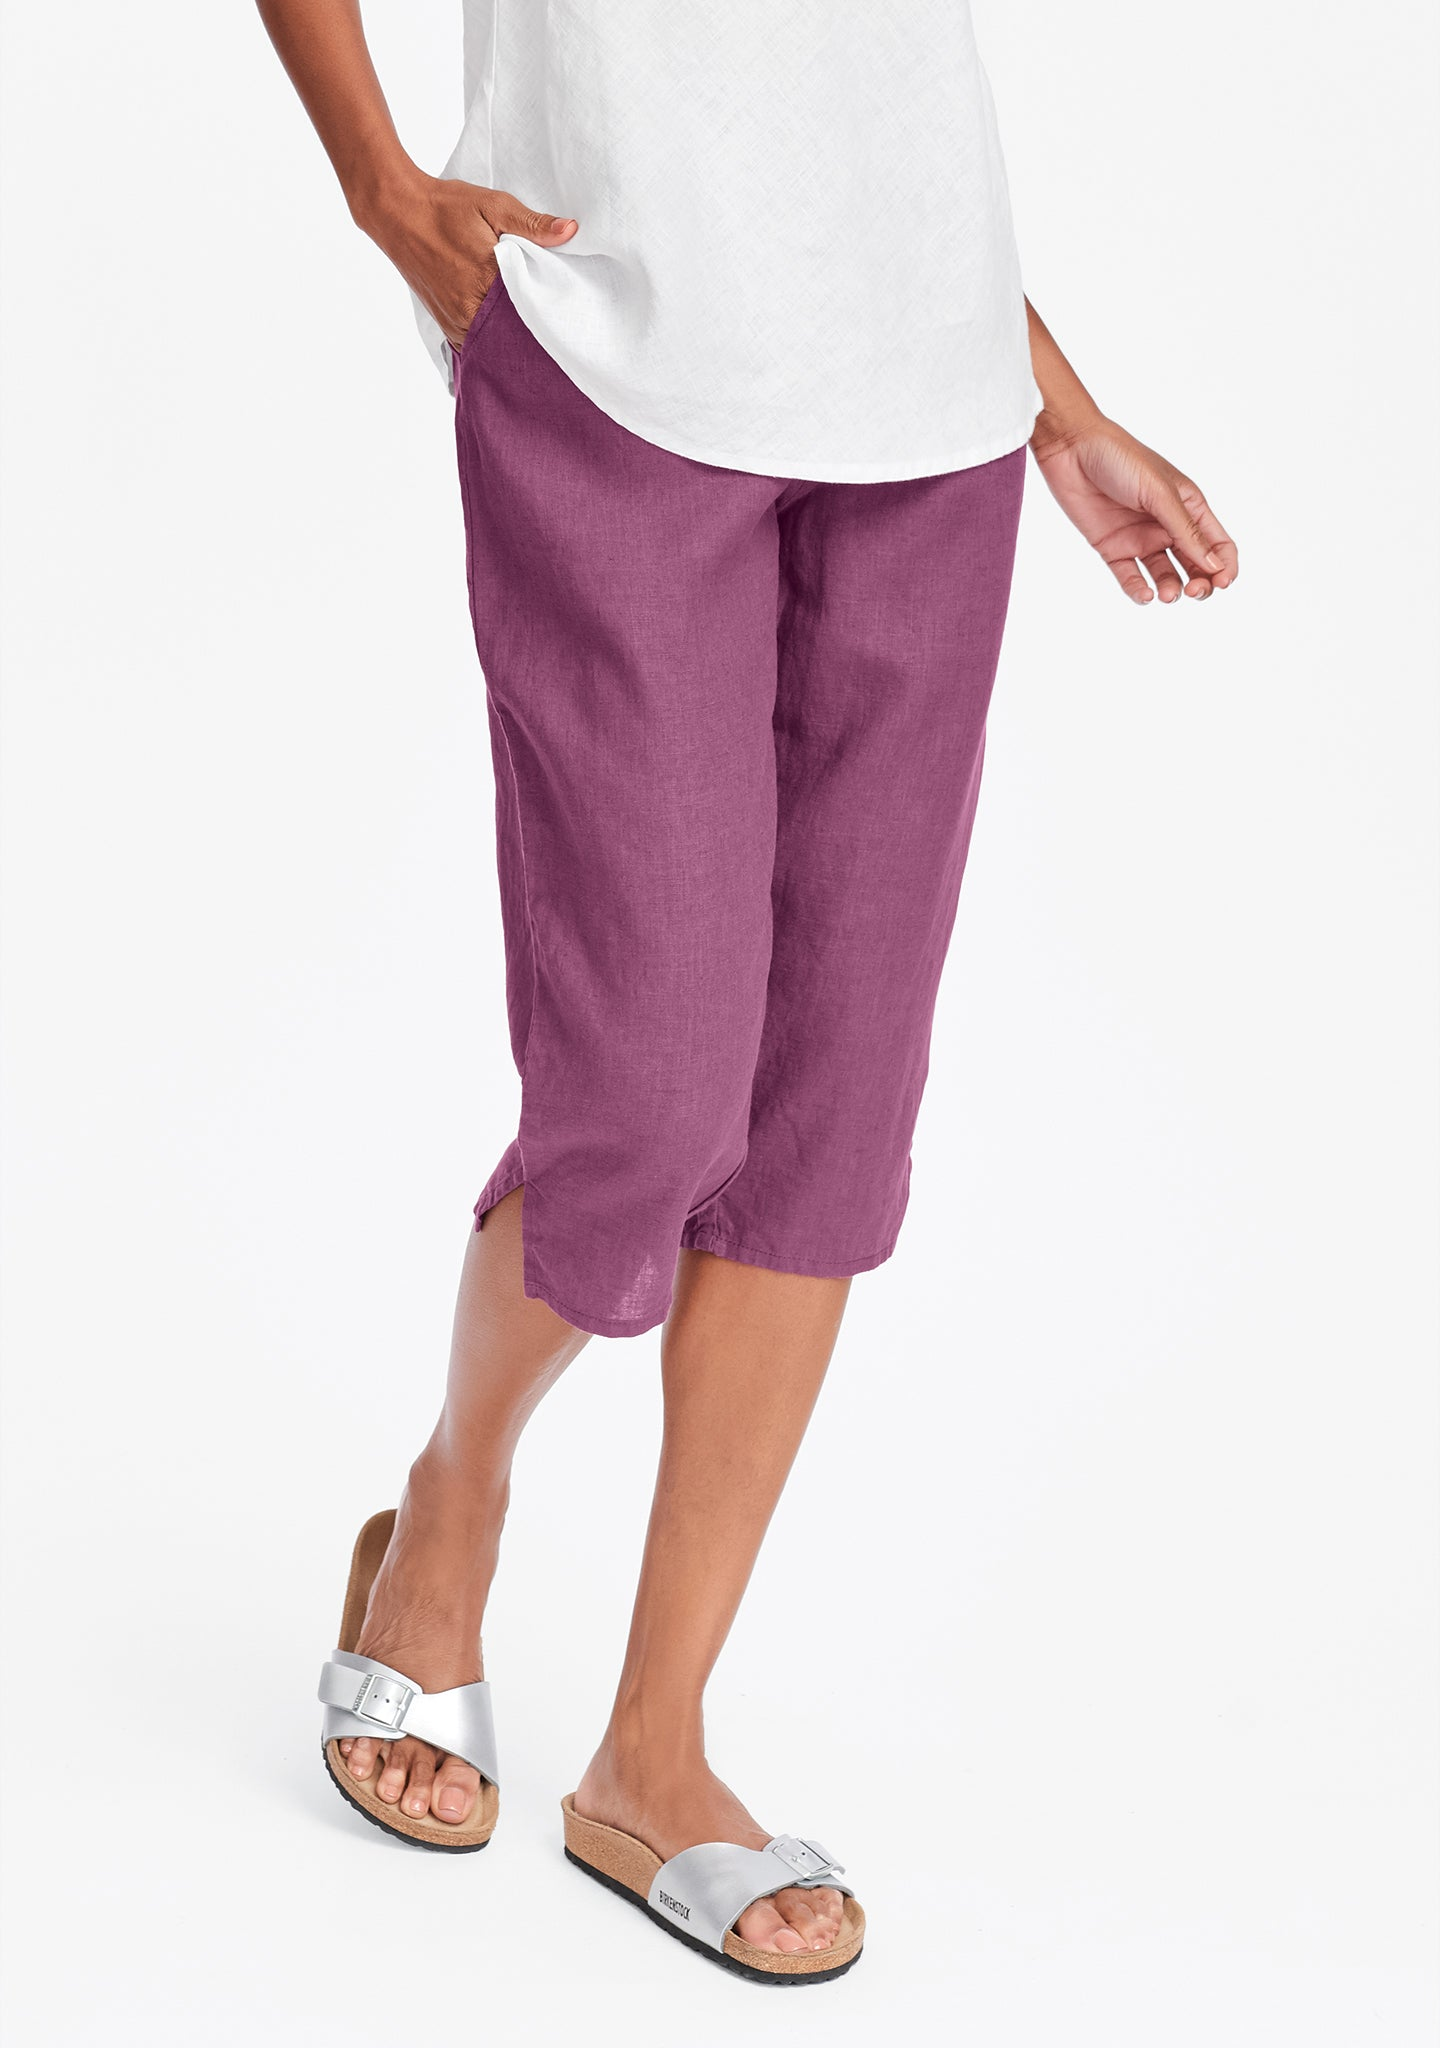 pedal pant linen crop pants purple